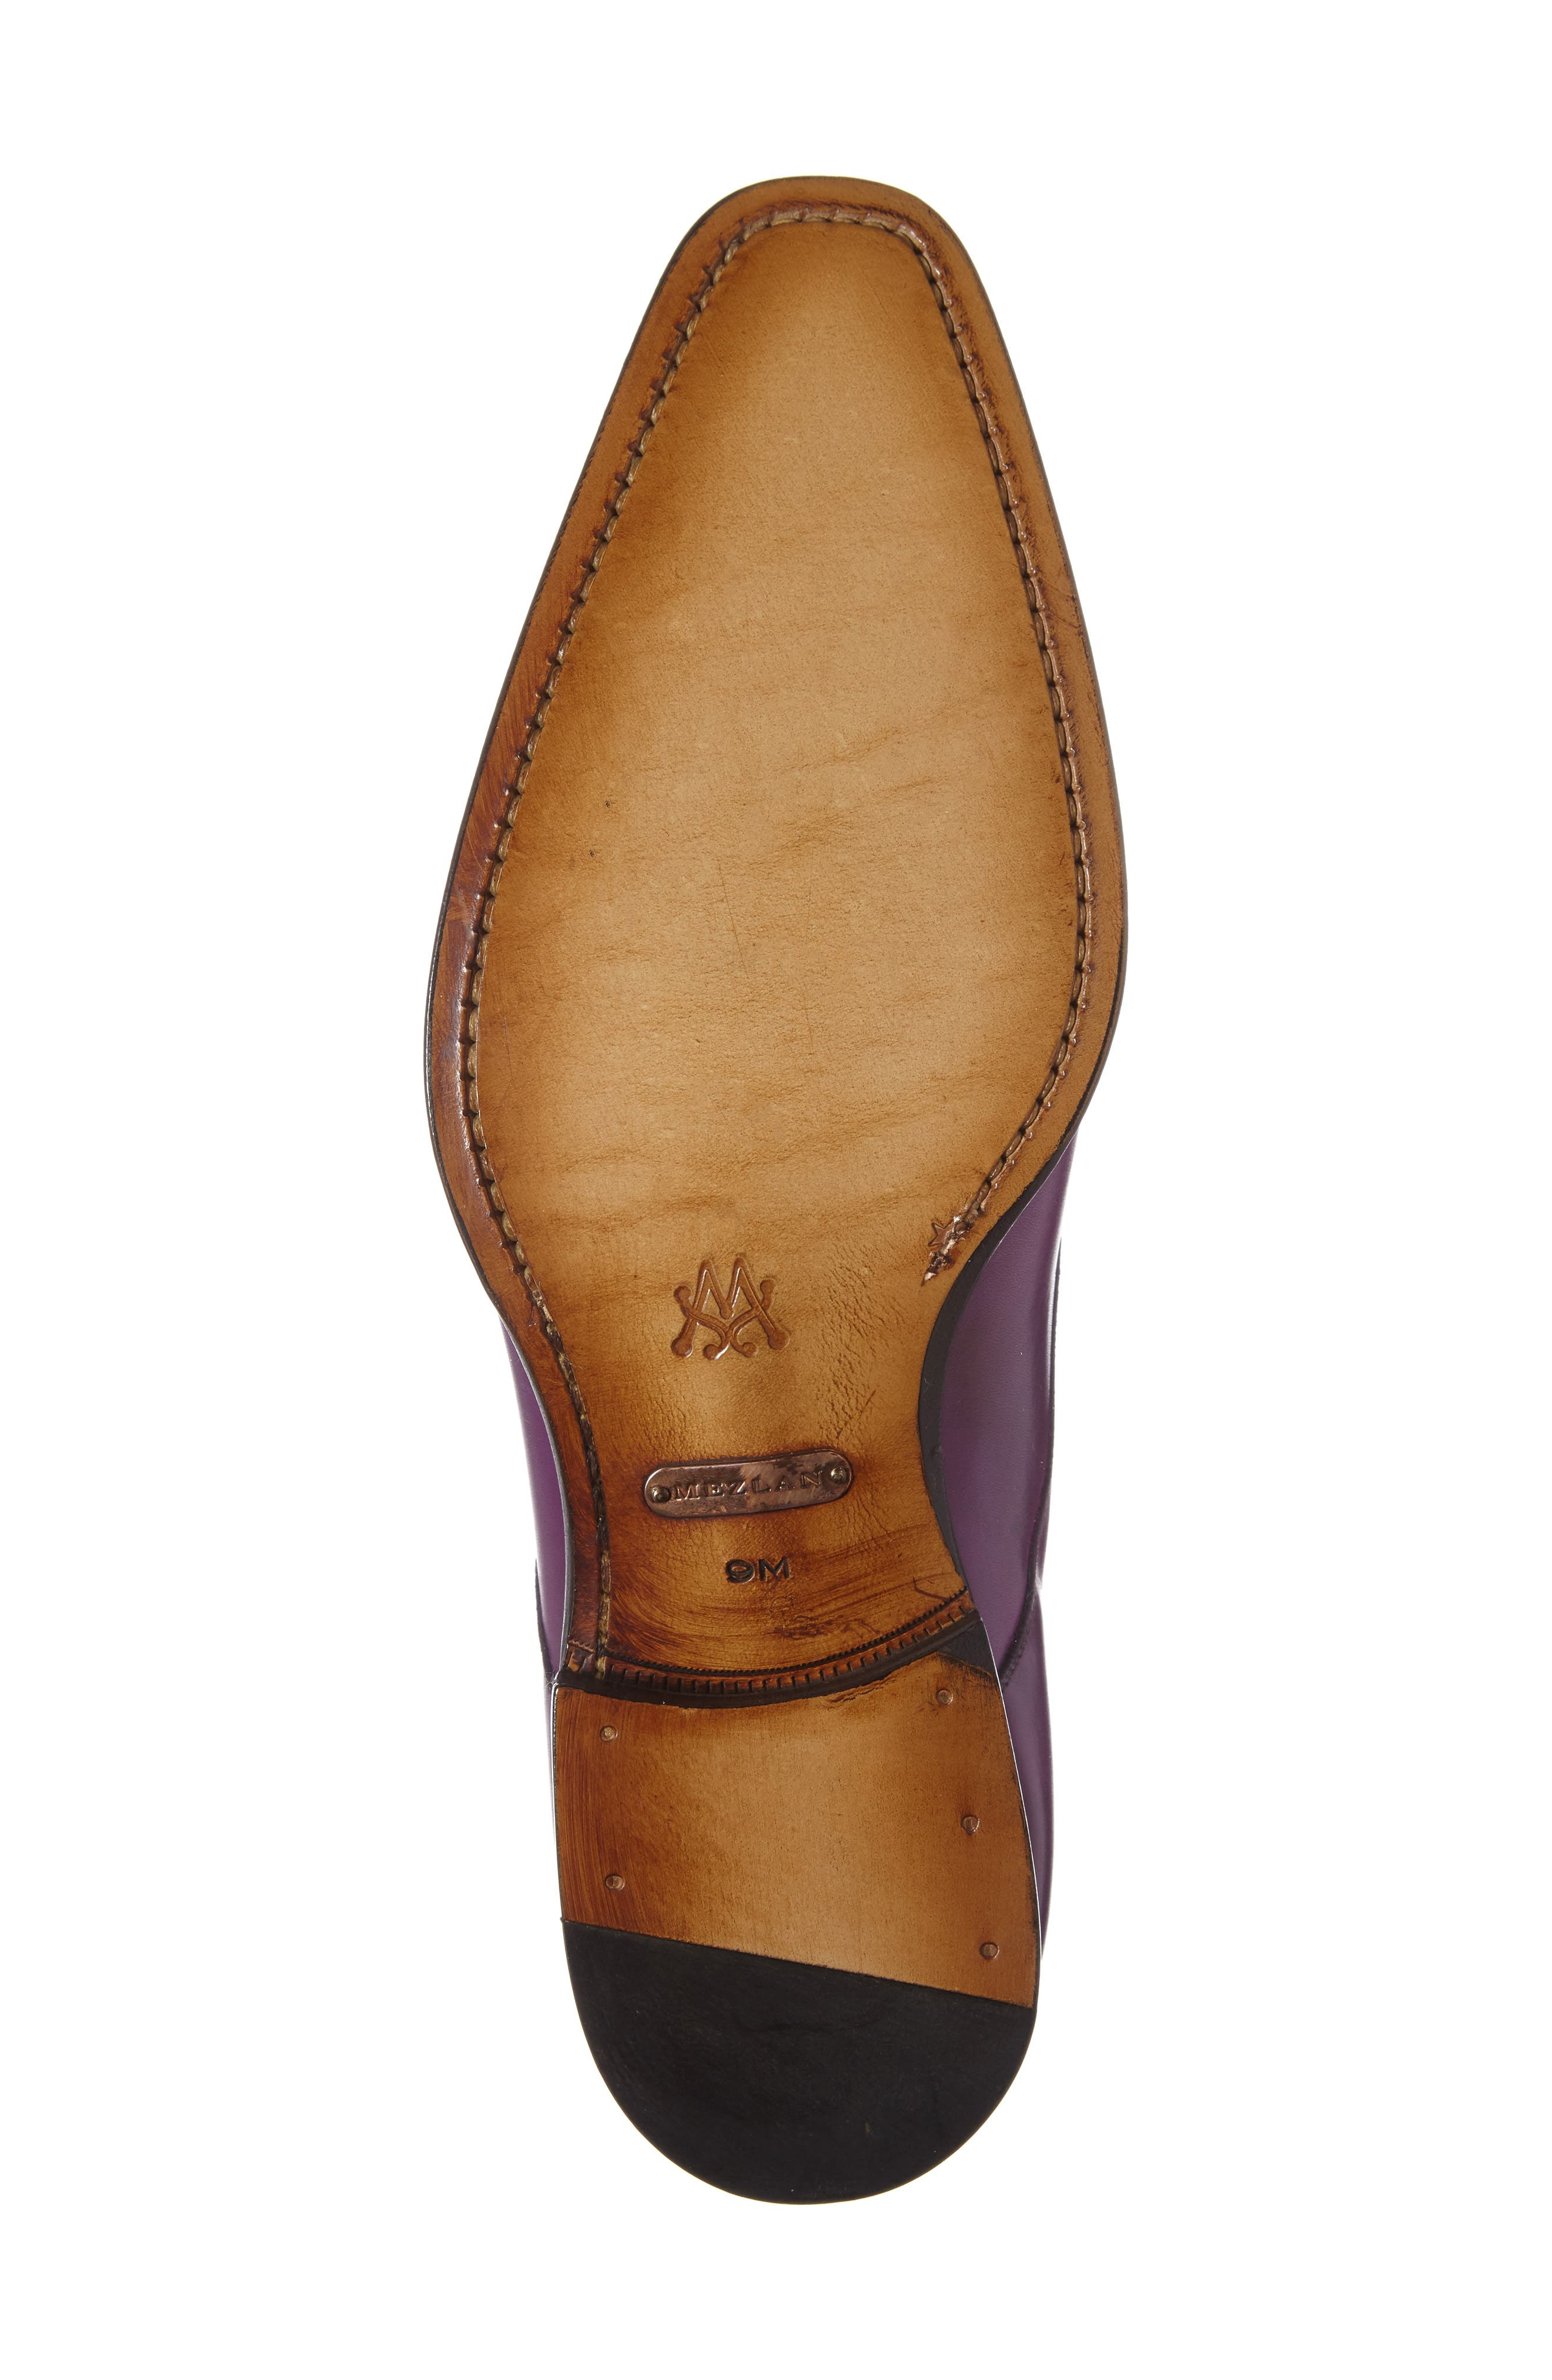 Cajal Double Monk Strap Cap Toe Shoe,                             Alternate thumbnail 4, color,                             Purple Leather